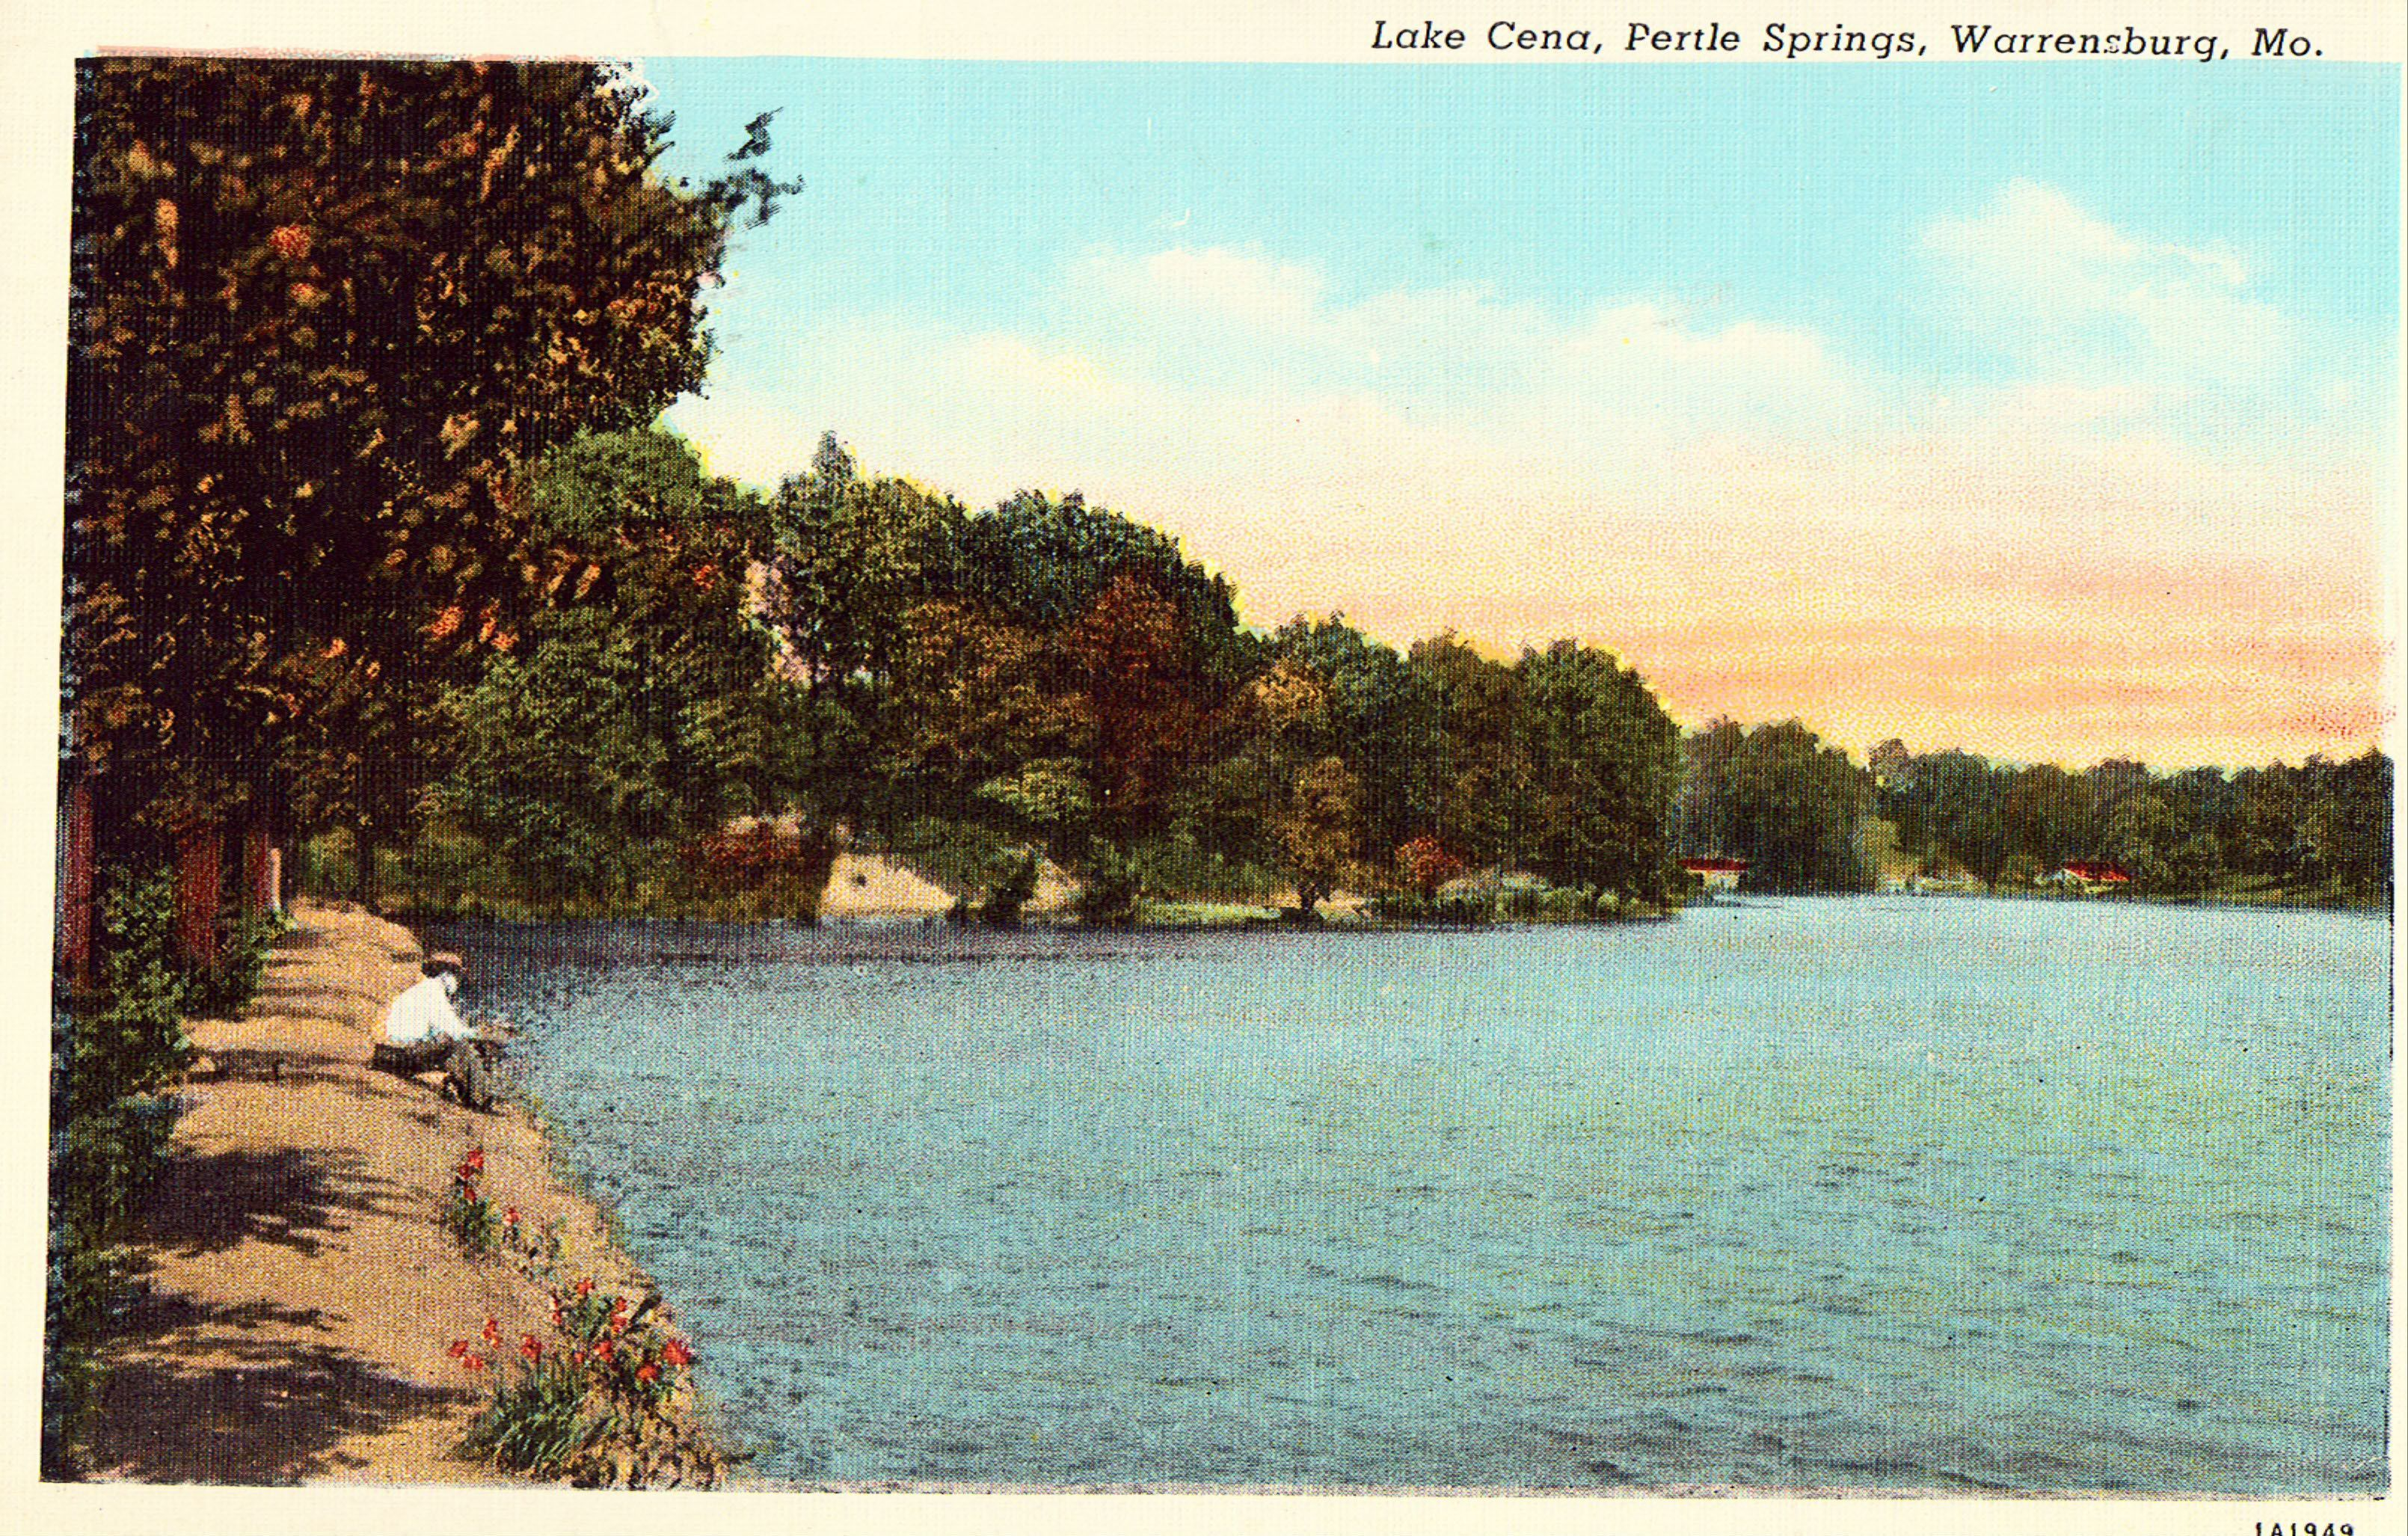 Lake Cena Pertle Springs Warrensburg Missouri With Images